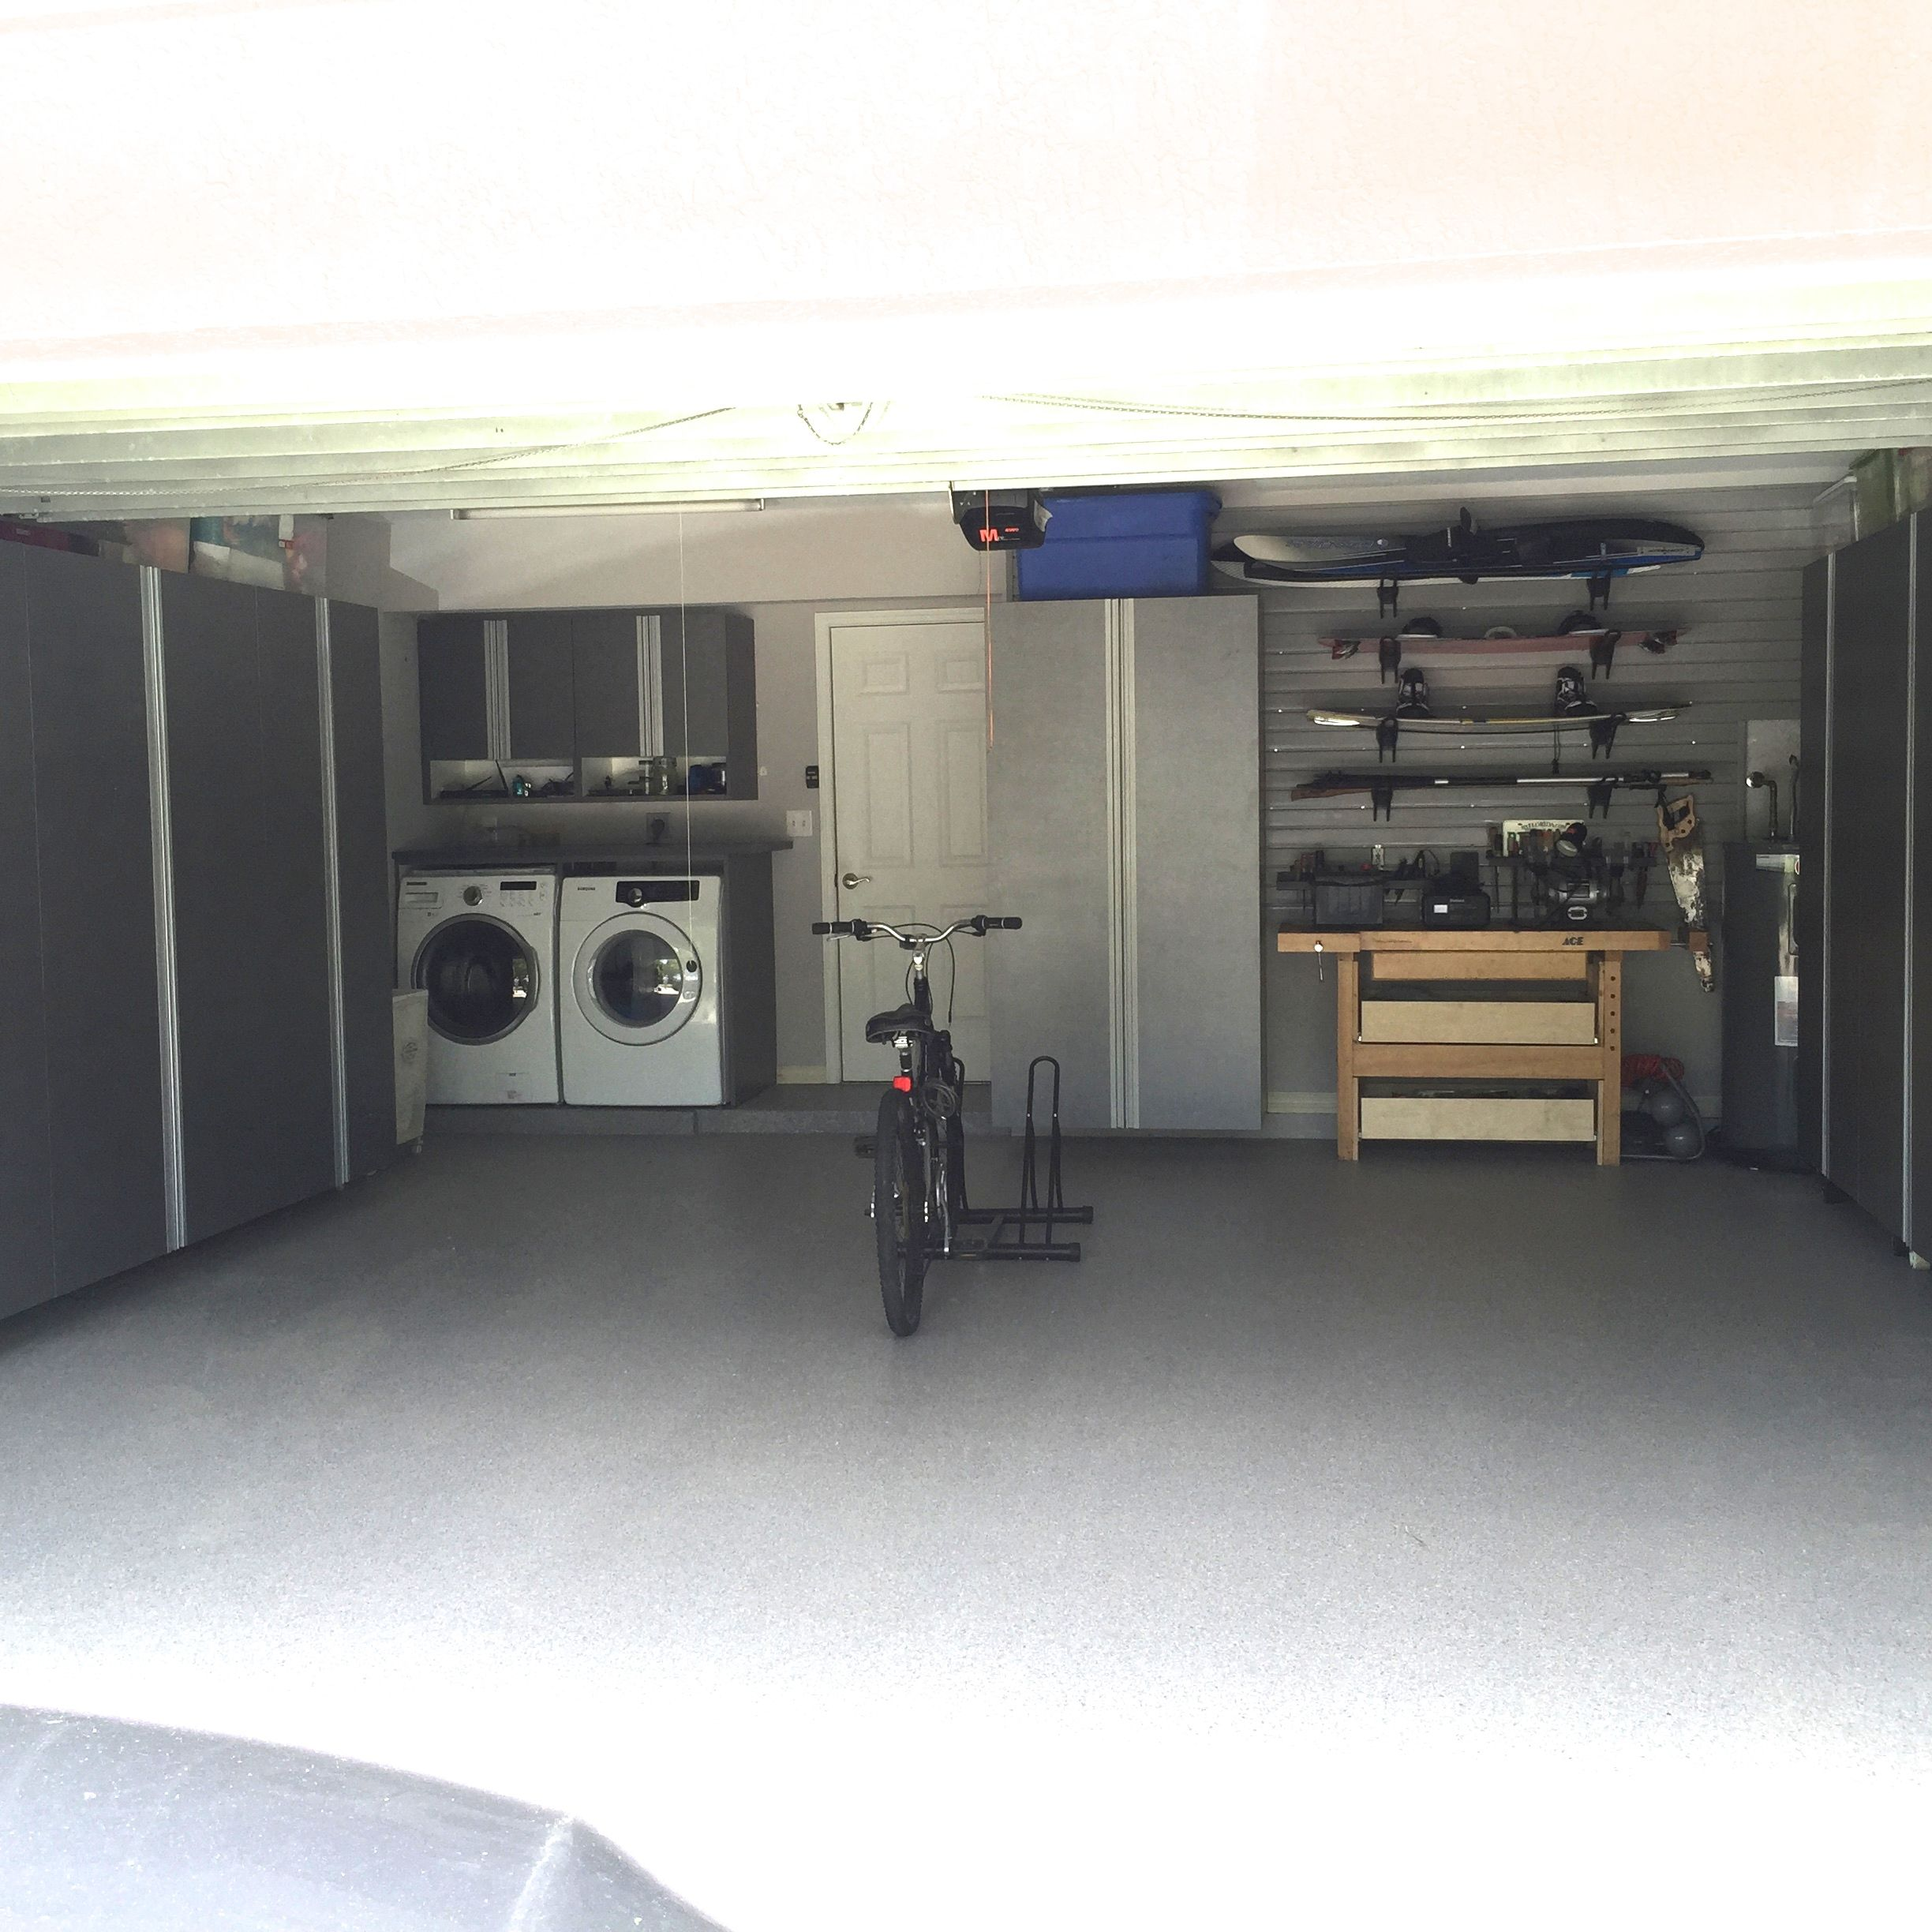 Total Garage Concepts Of Naples, FL Providing Custom Garage Storage Cabinets  And Customized Garage Cabinetry Storage Solutions.